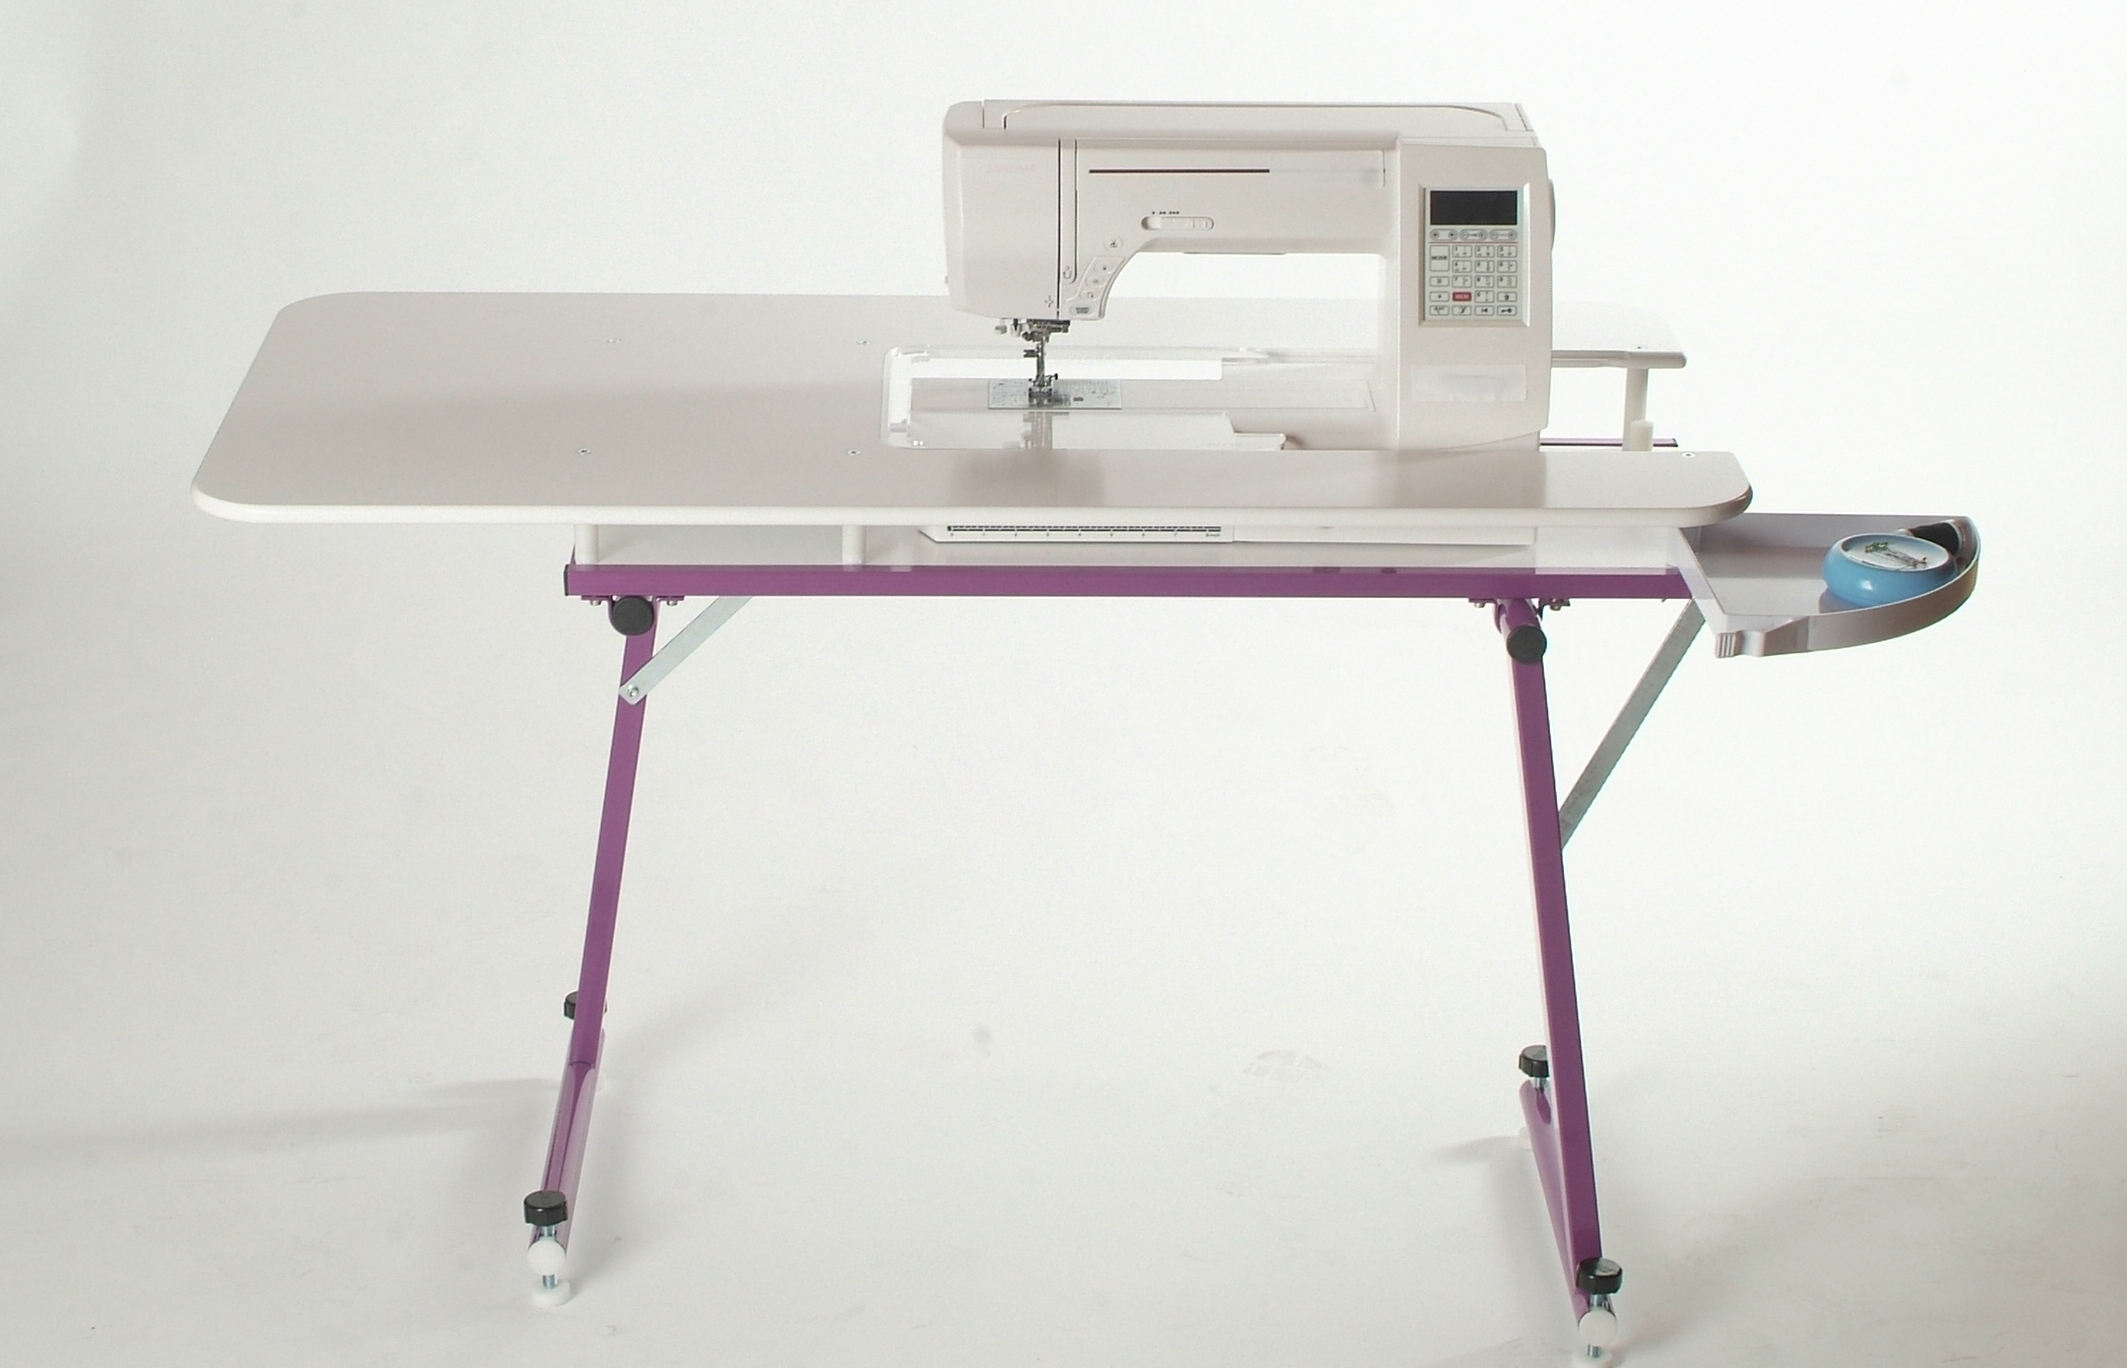 Sewezi Grande Sewing Table Quiltastix